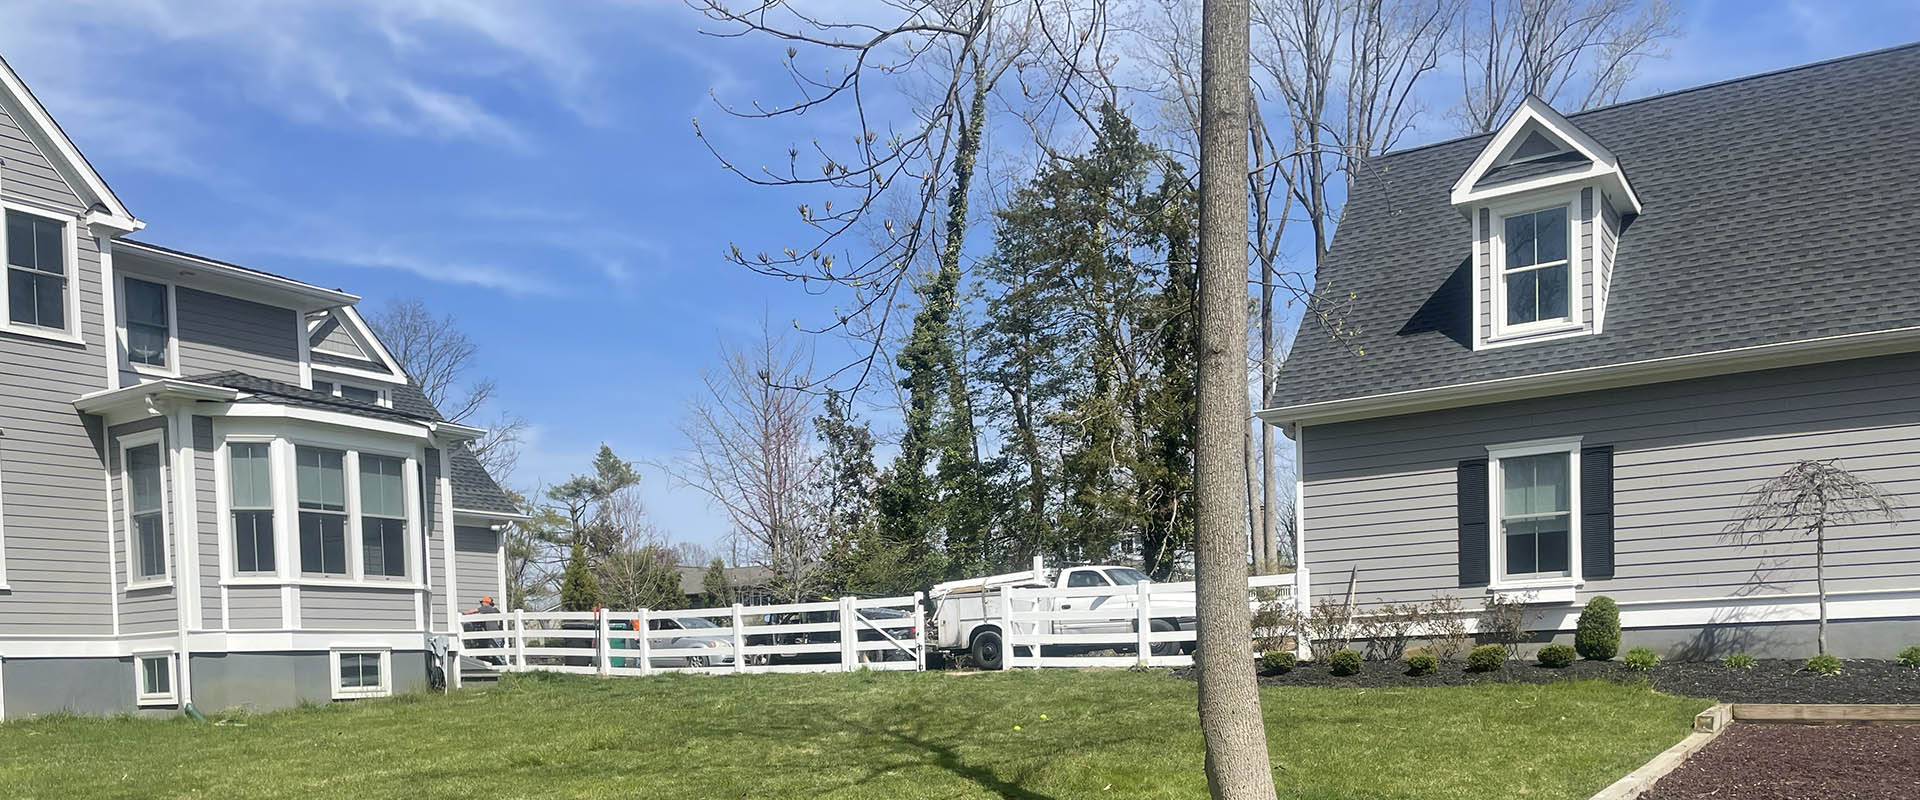 fencing company NJ